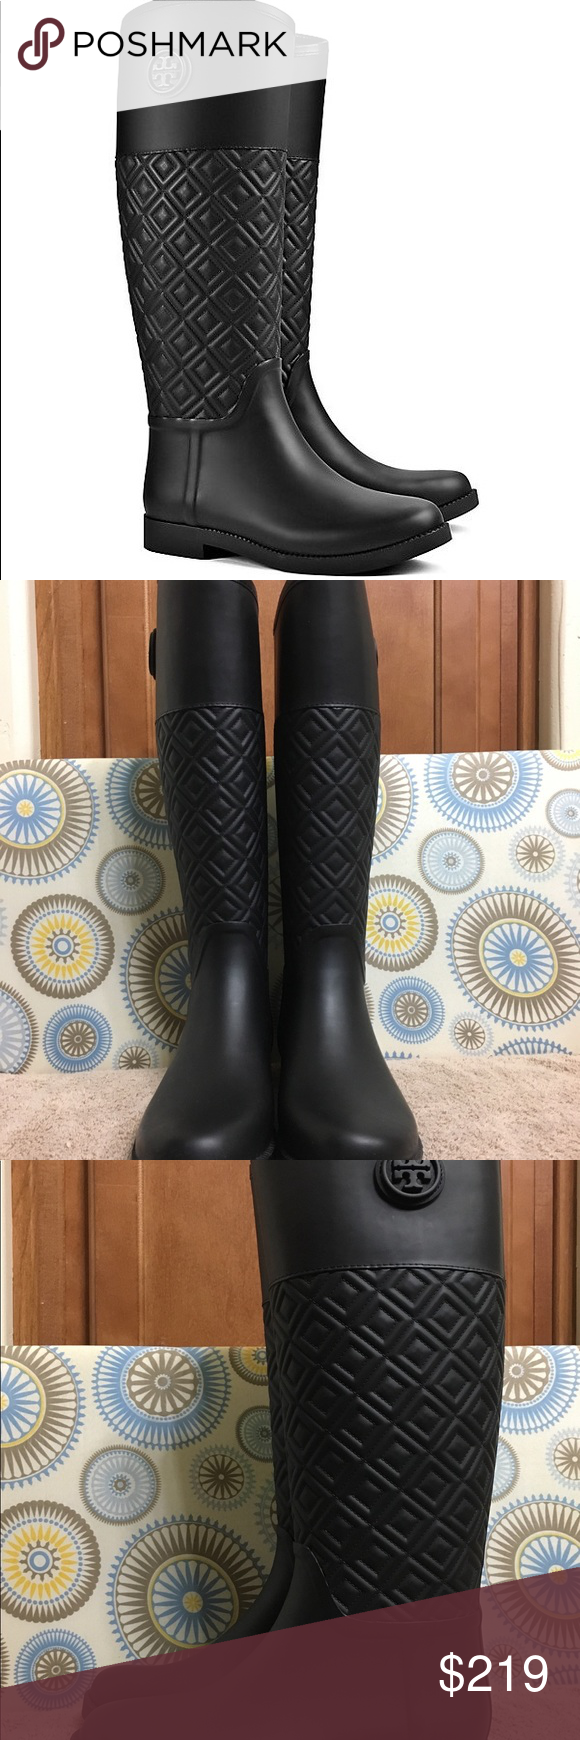 6bdbcf35fed316 Tory Burch Marion Quilted Rain Boots These are brand new Tory Burch Marion  Quilted Rain Boots